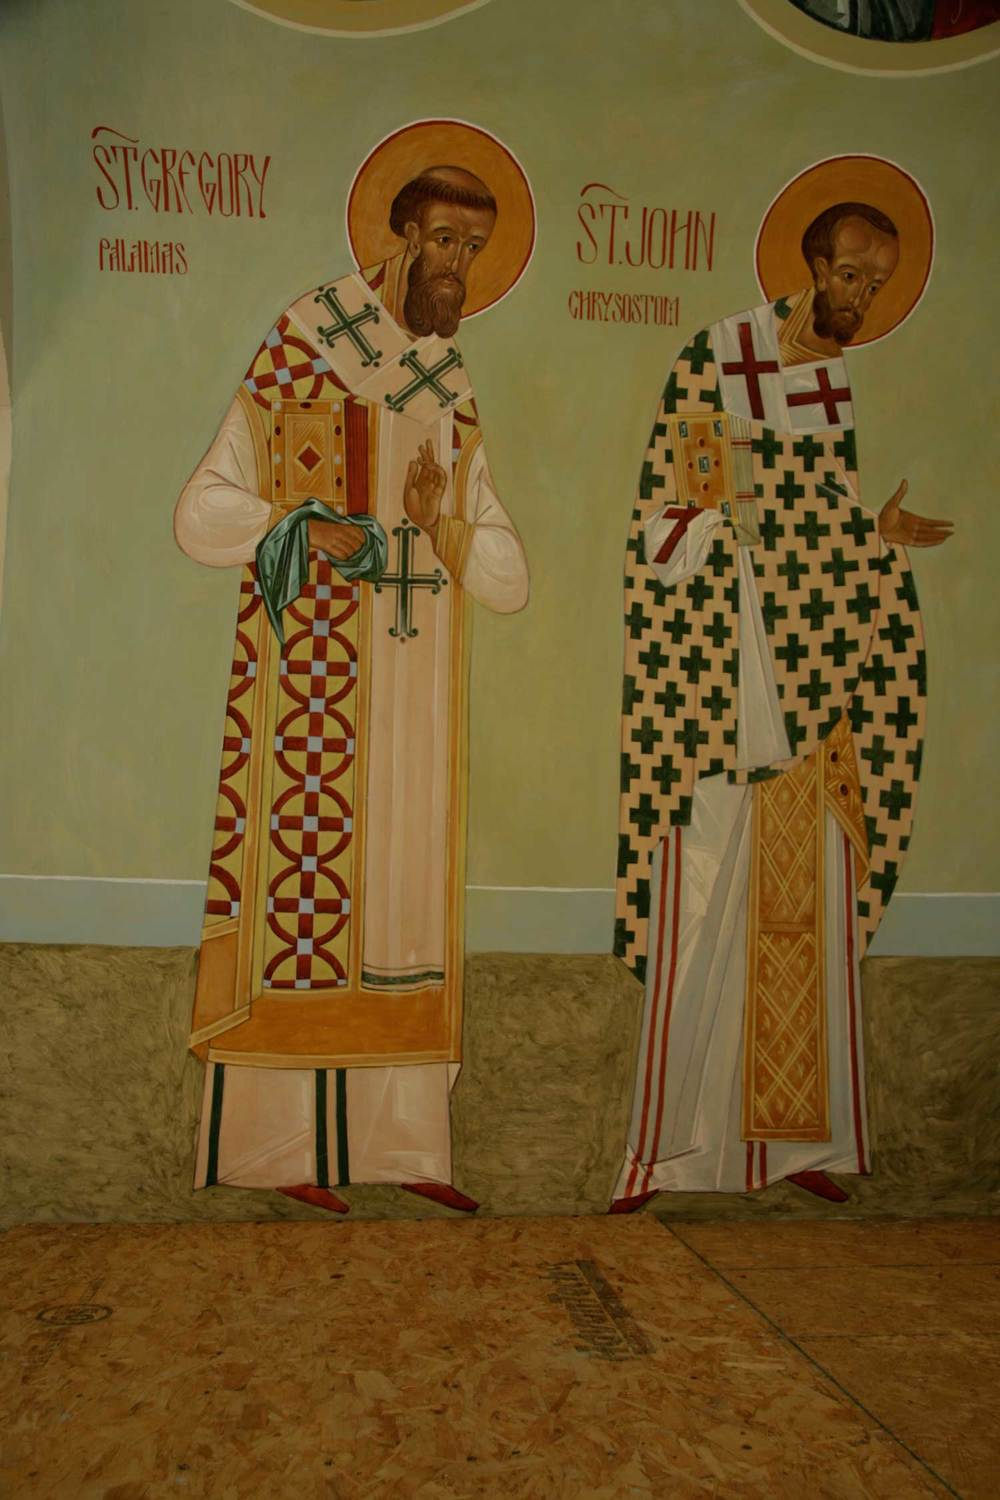 St Gregory Palamas and St John Chrysostom